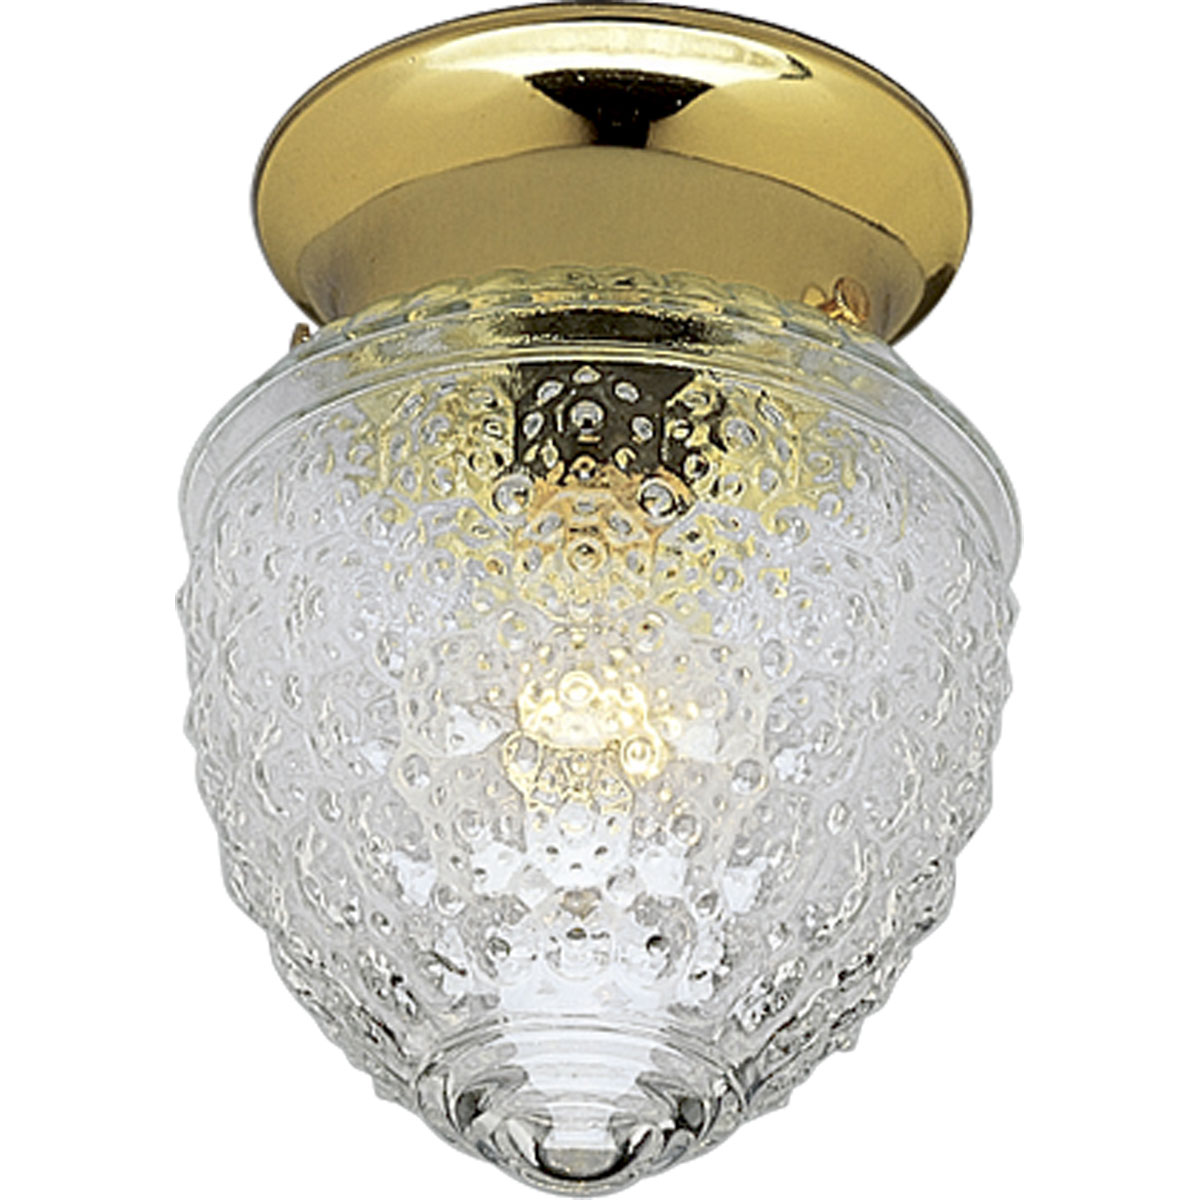 progress lighting glass globes collection close to ceiling light p3750. Black Bedroom Furniture Sets. Home Design Ideas